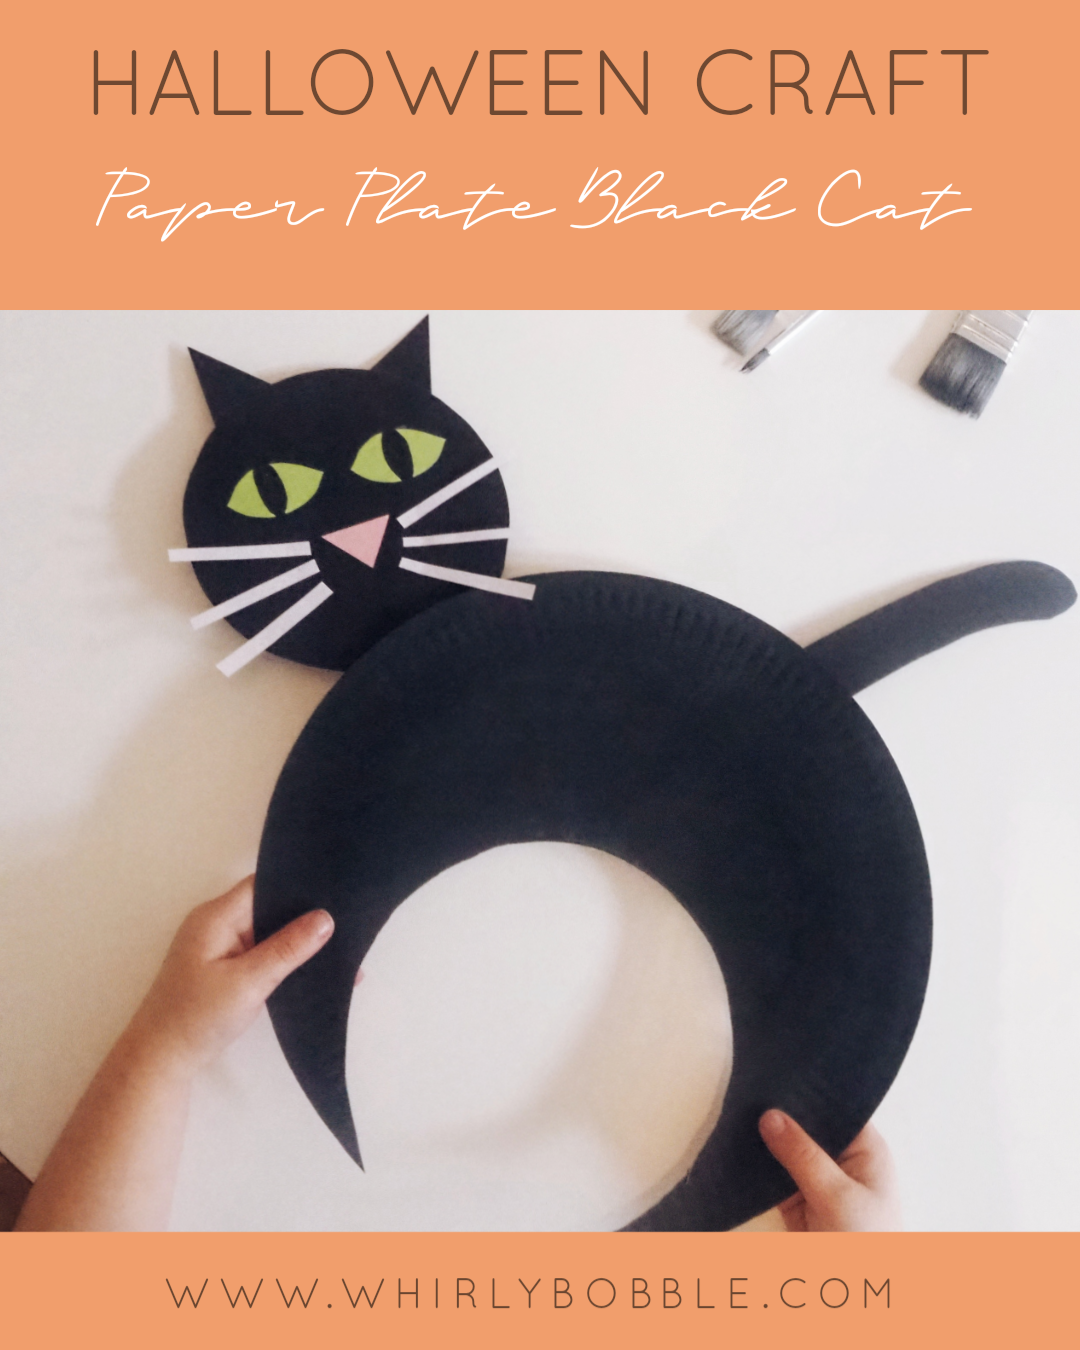 Halloween Craft - Paper Plate Black Cat